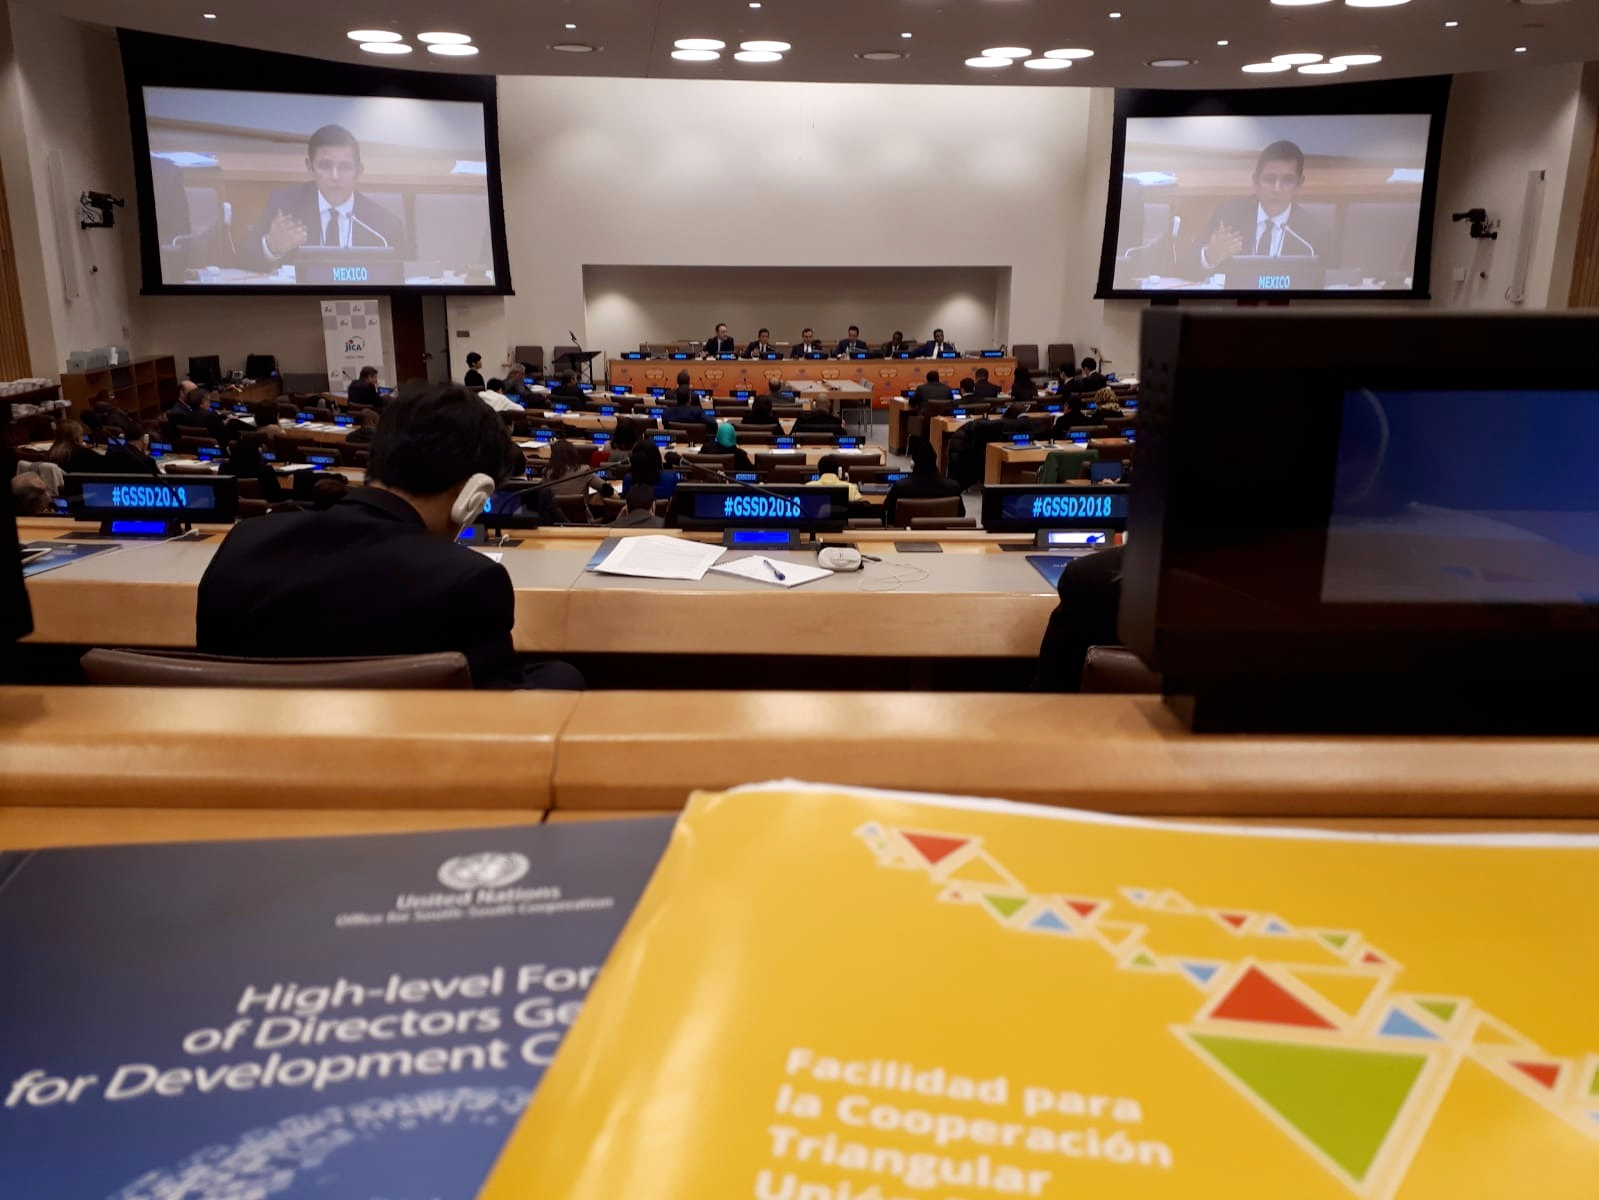 High-level Forum of Directors General for Development Cooperation: 90 directores y responsables de Cooperación para el Desarrollo de todo el mundo comparten experiencias y definen posiciones de cara a PABA+40.